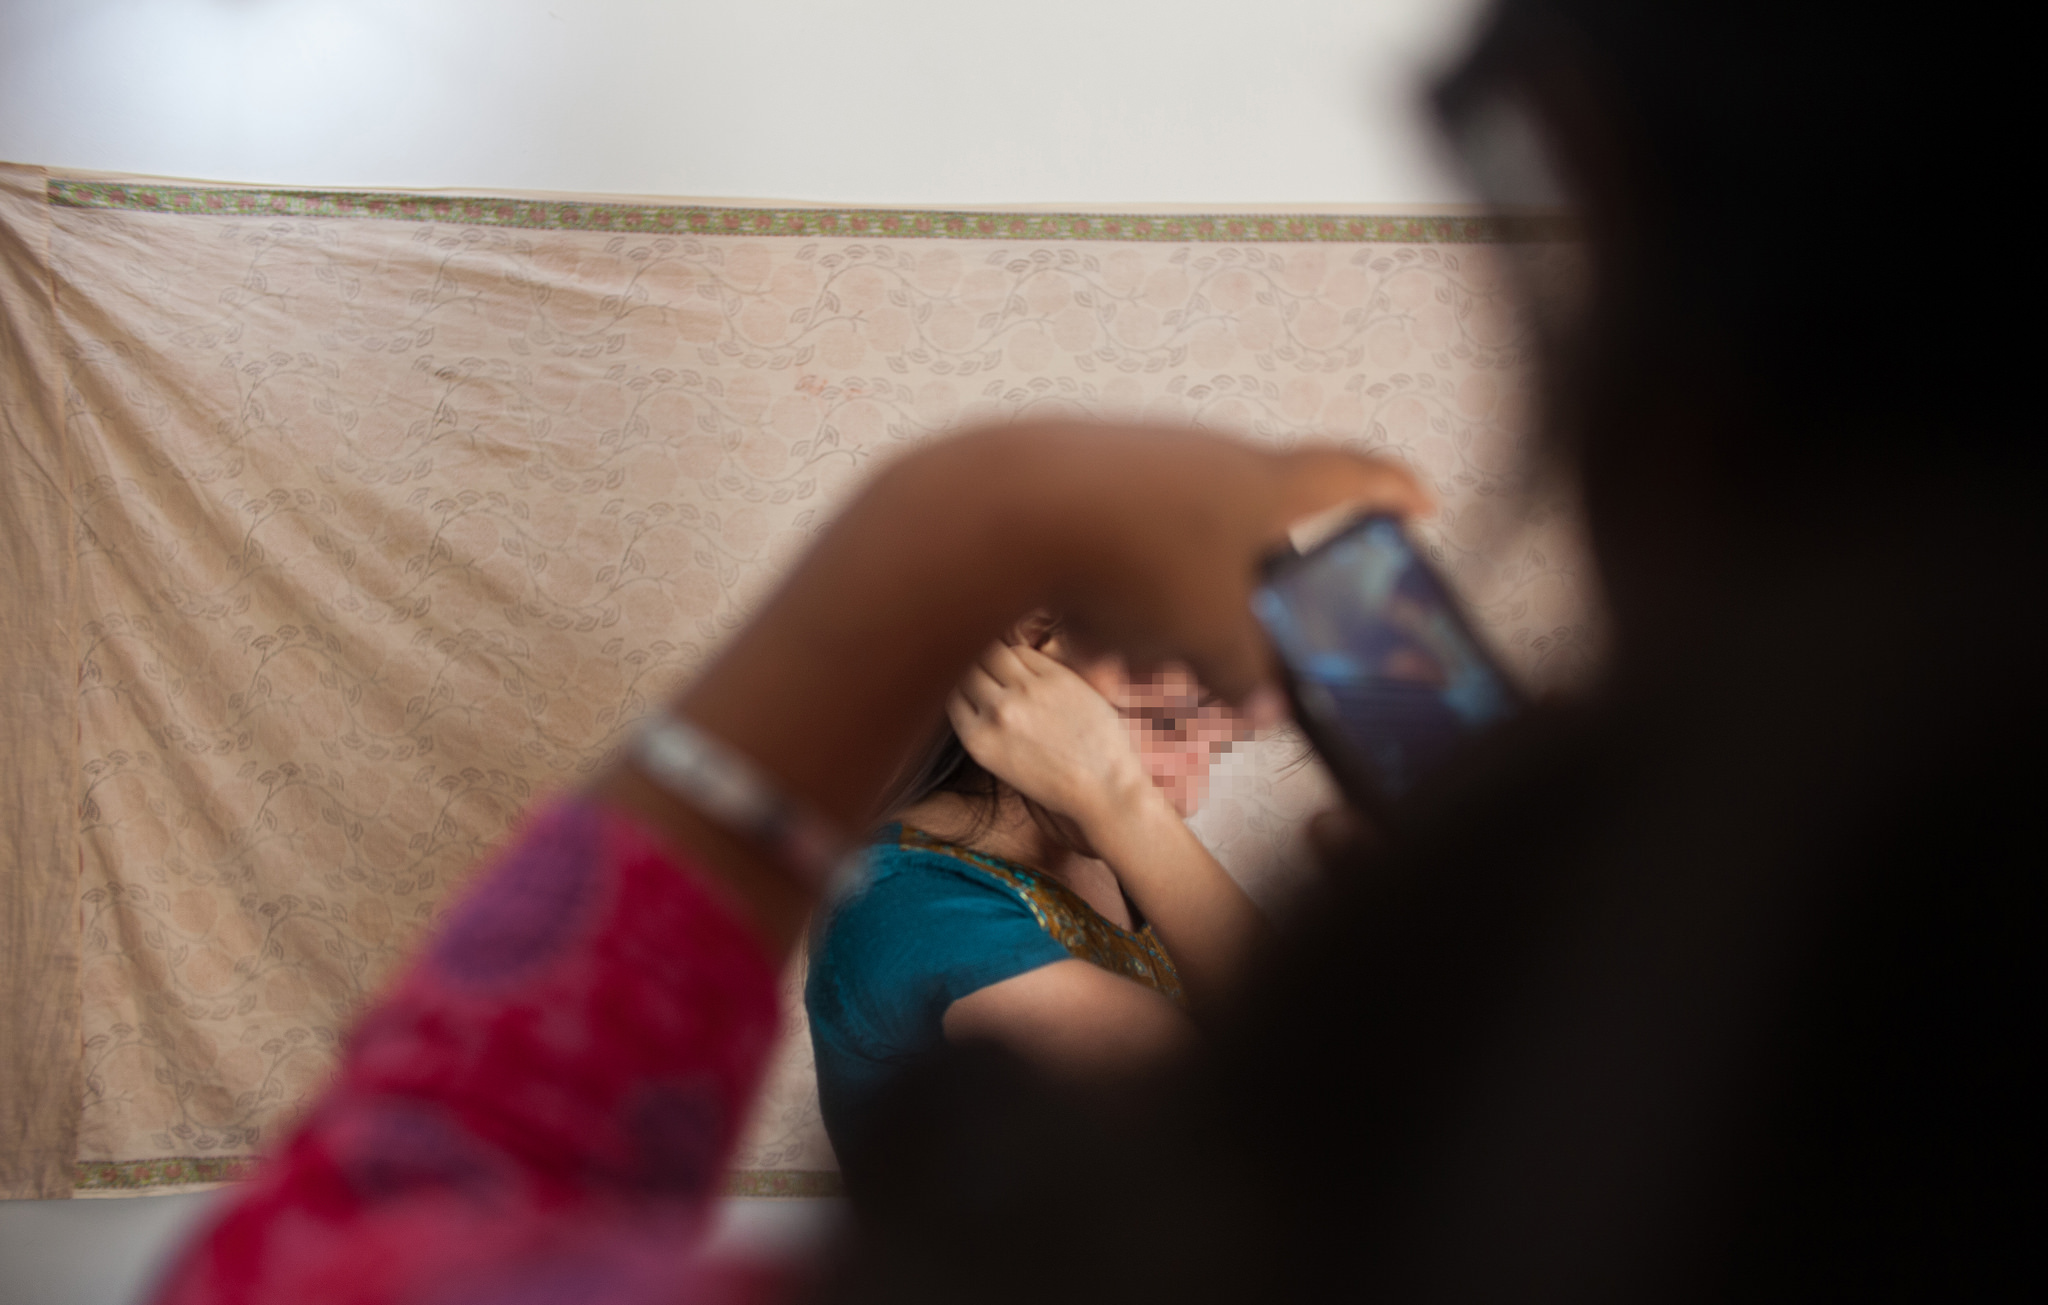 The girls practice some photography. After abuse, drug addictions, and other experiences that have disrupted the normal flow of life, these young women need much encouragement and care in order to be equipped for a life different from what they have known.